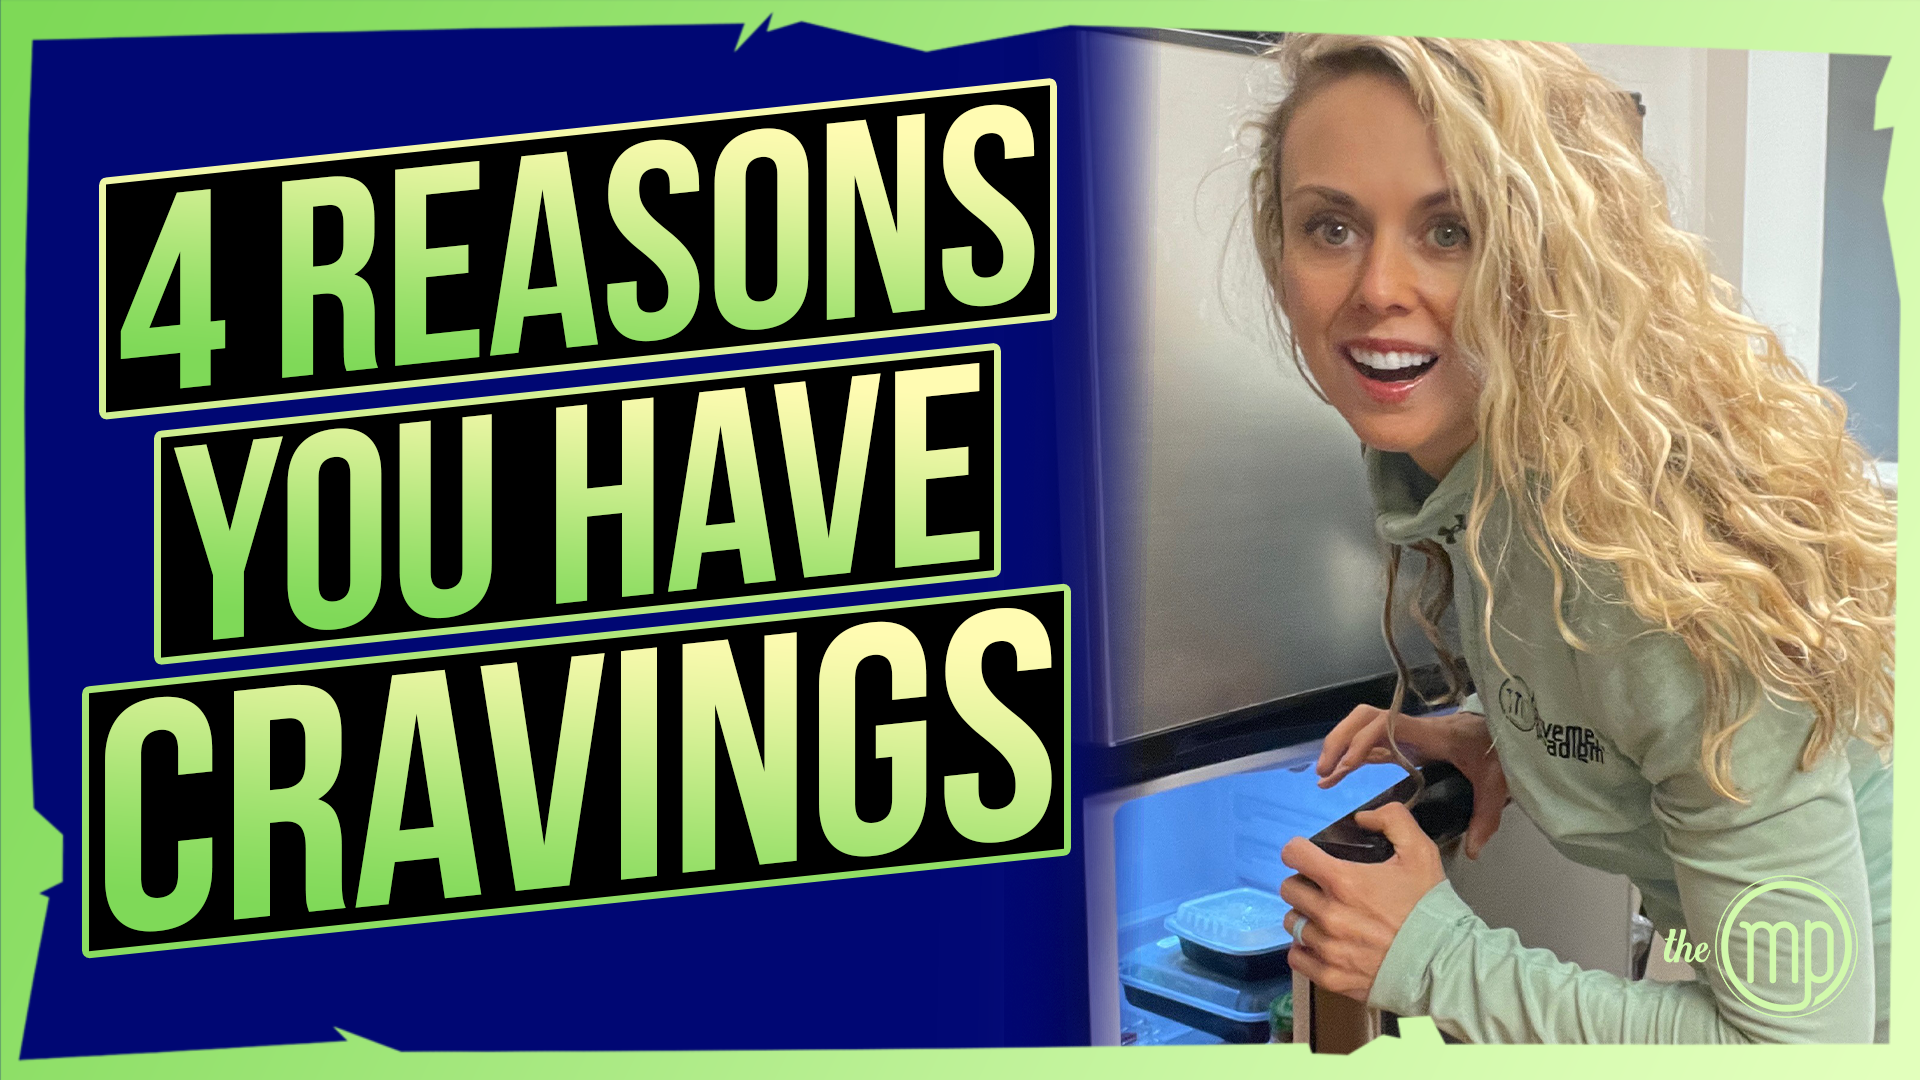 WHY DO YOU HAVE CRAVINGS | 4 reasons